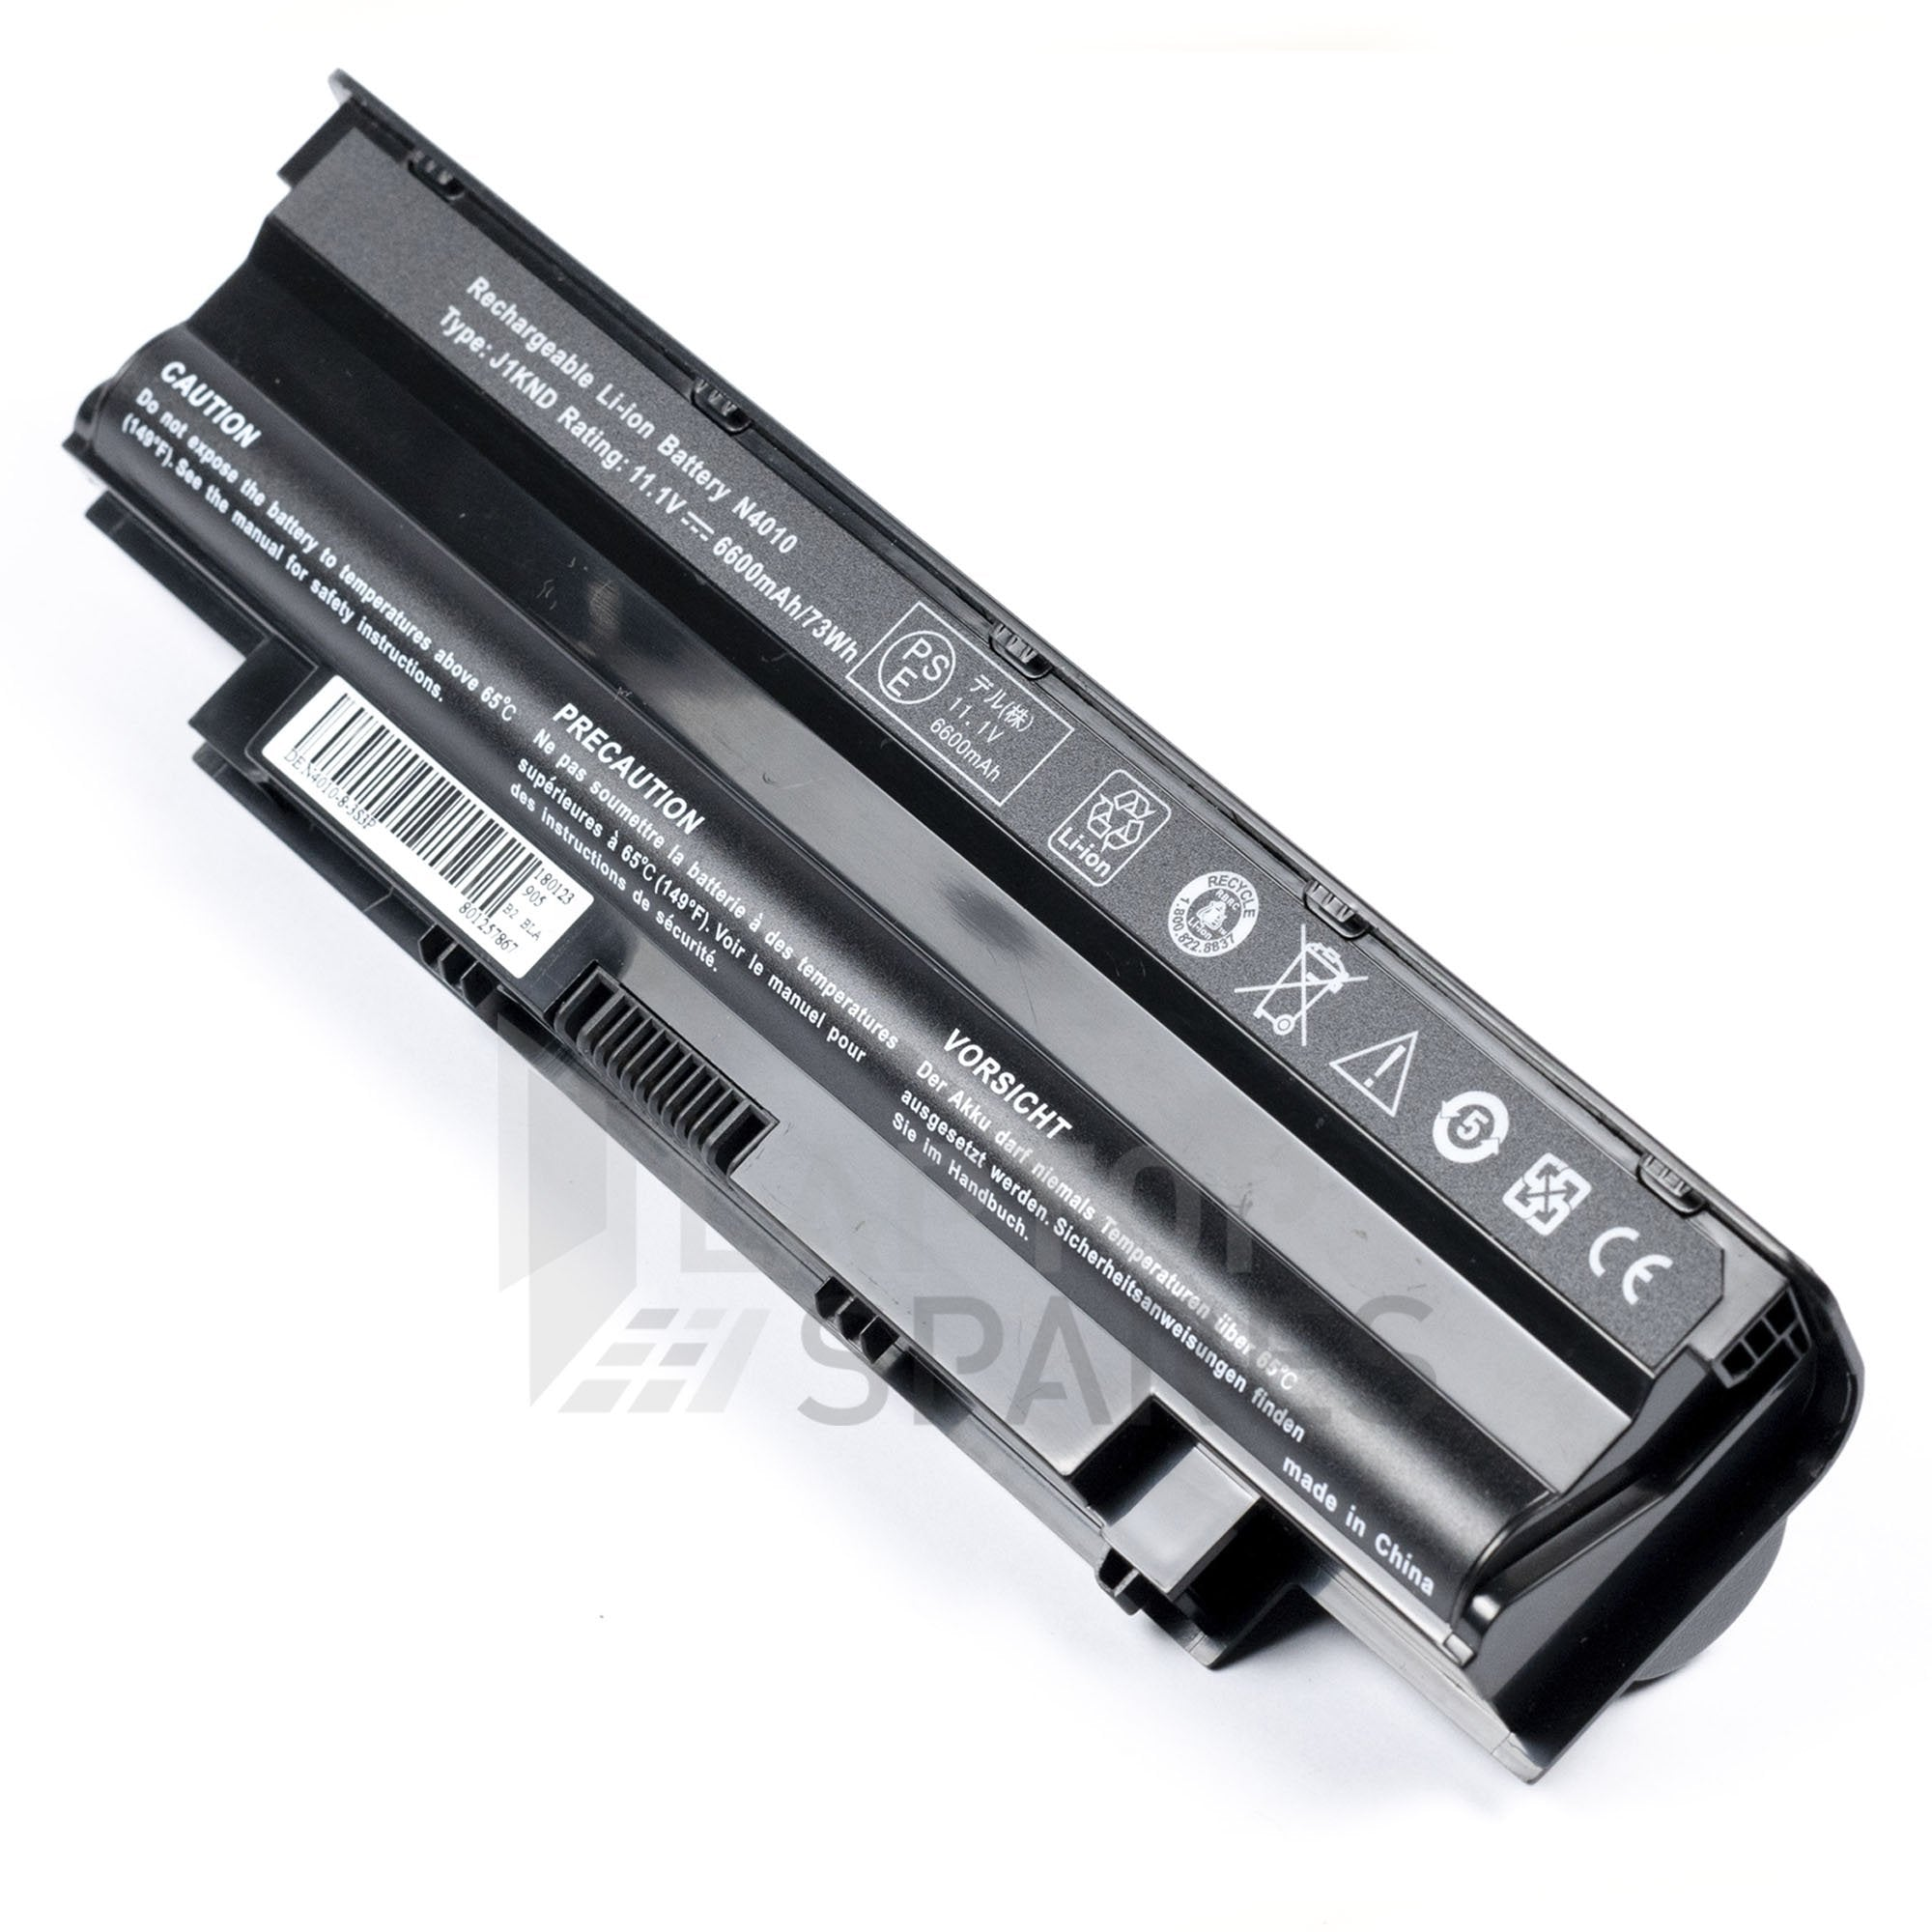 Dell Inspiron 13R 3010-D381 6600mAh 9 Cell Battery